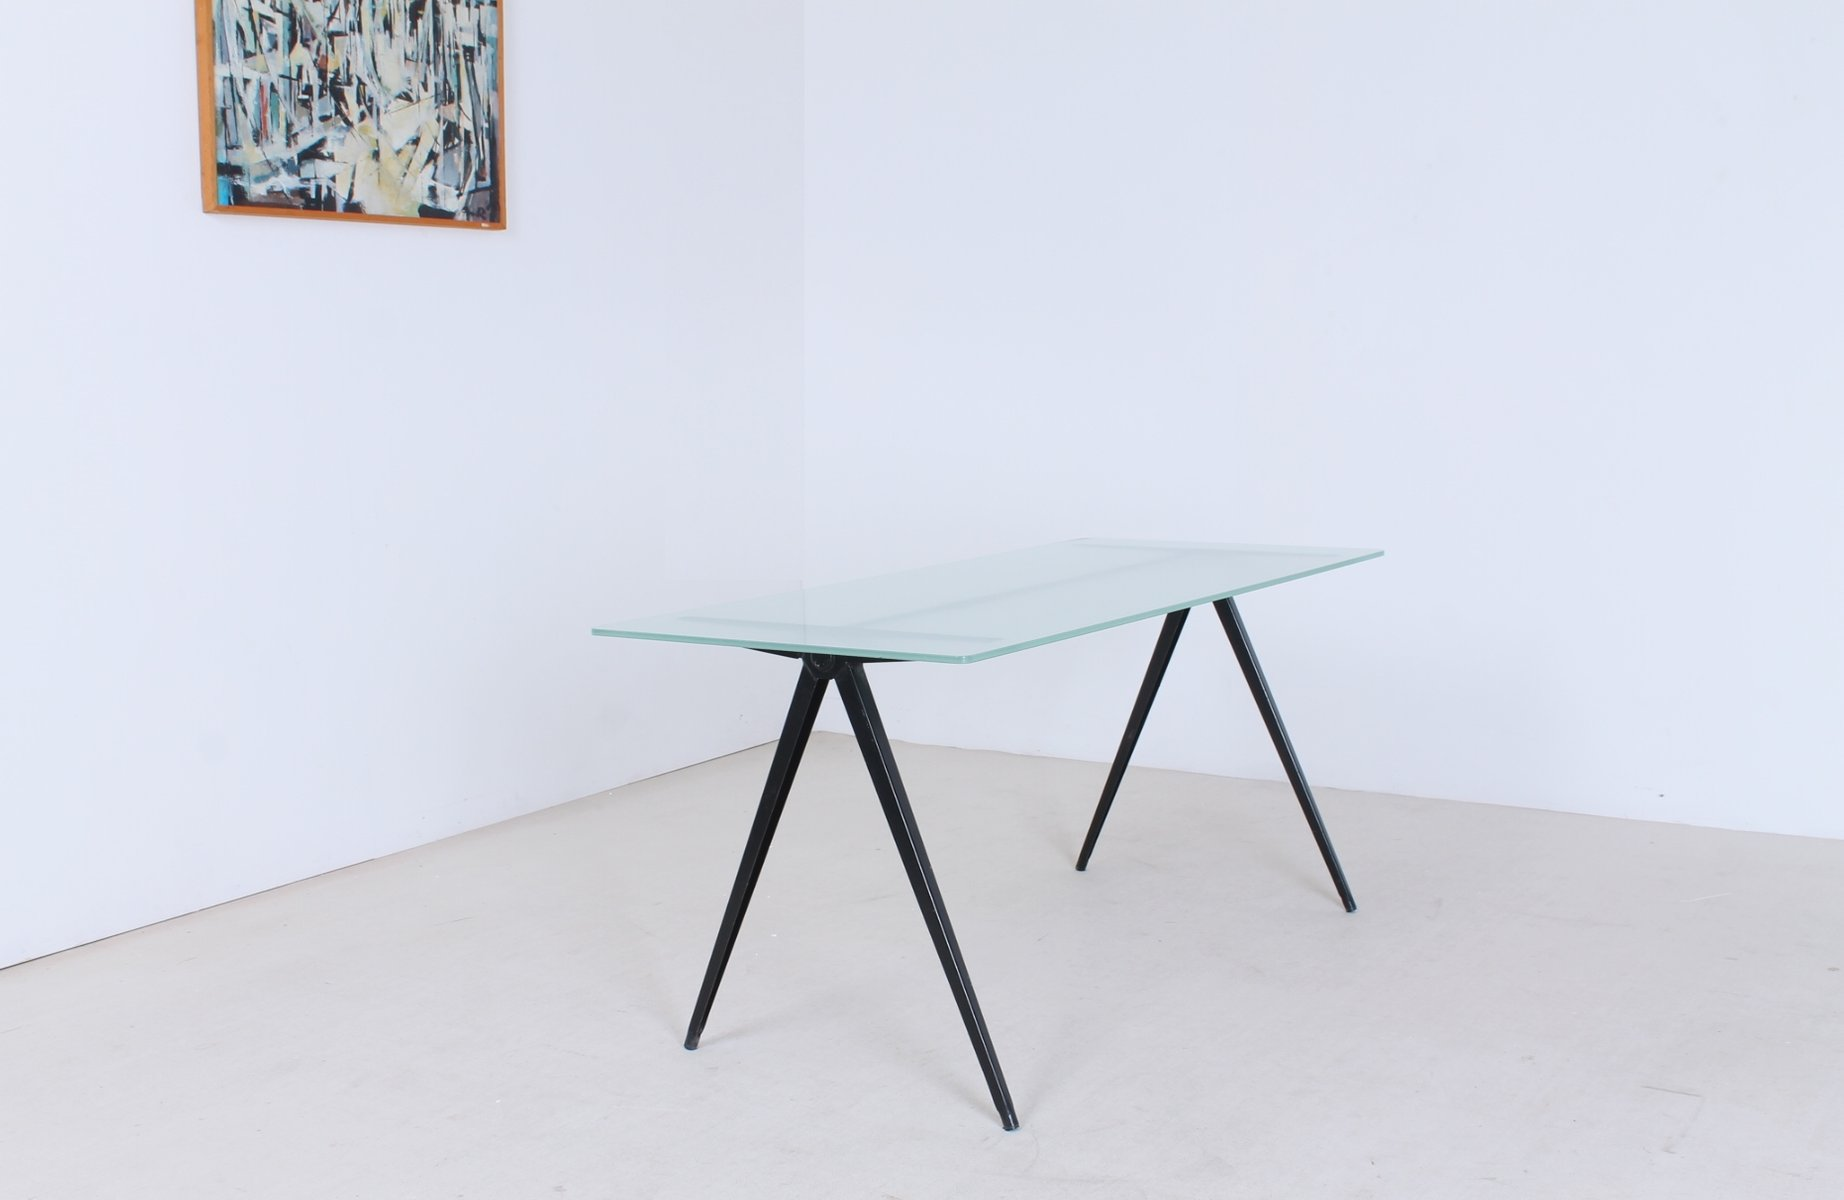 Black pass Pyramid Base Coffee Table from Marko 1960s for sale